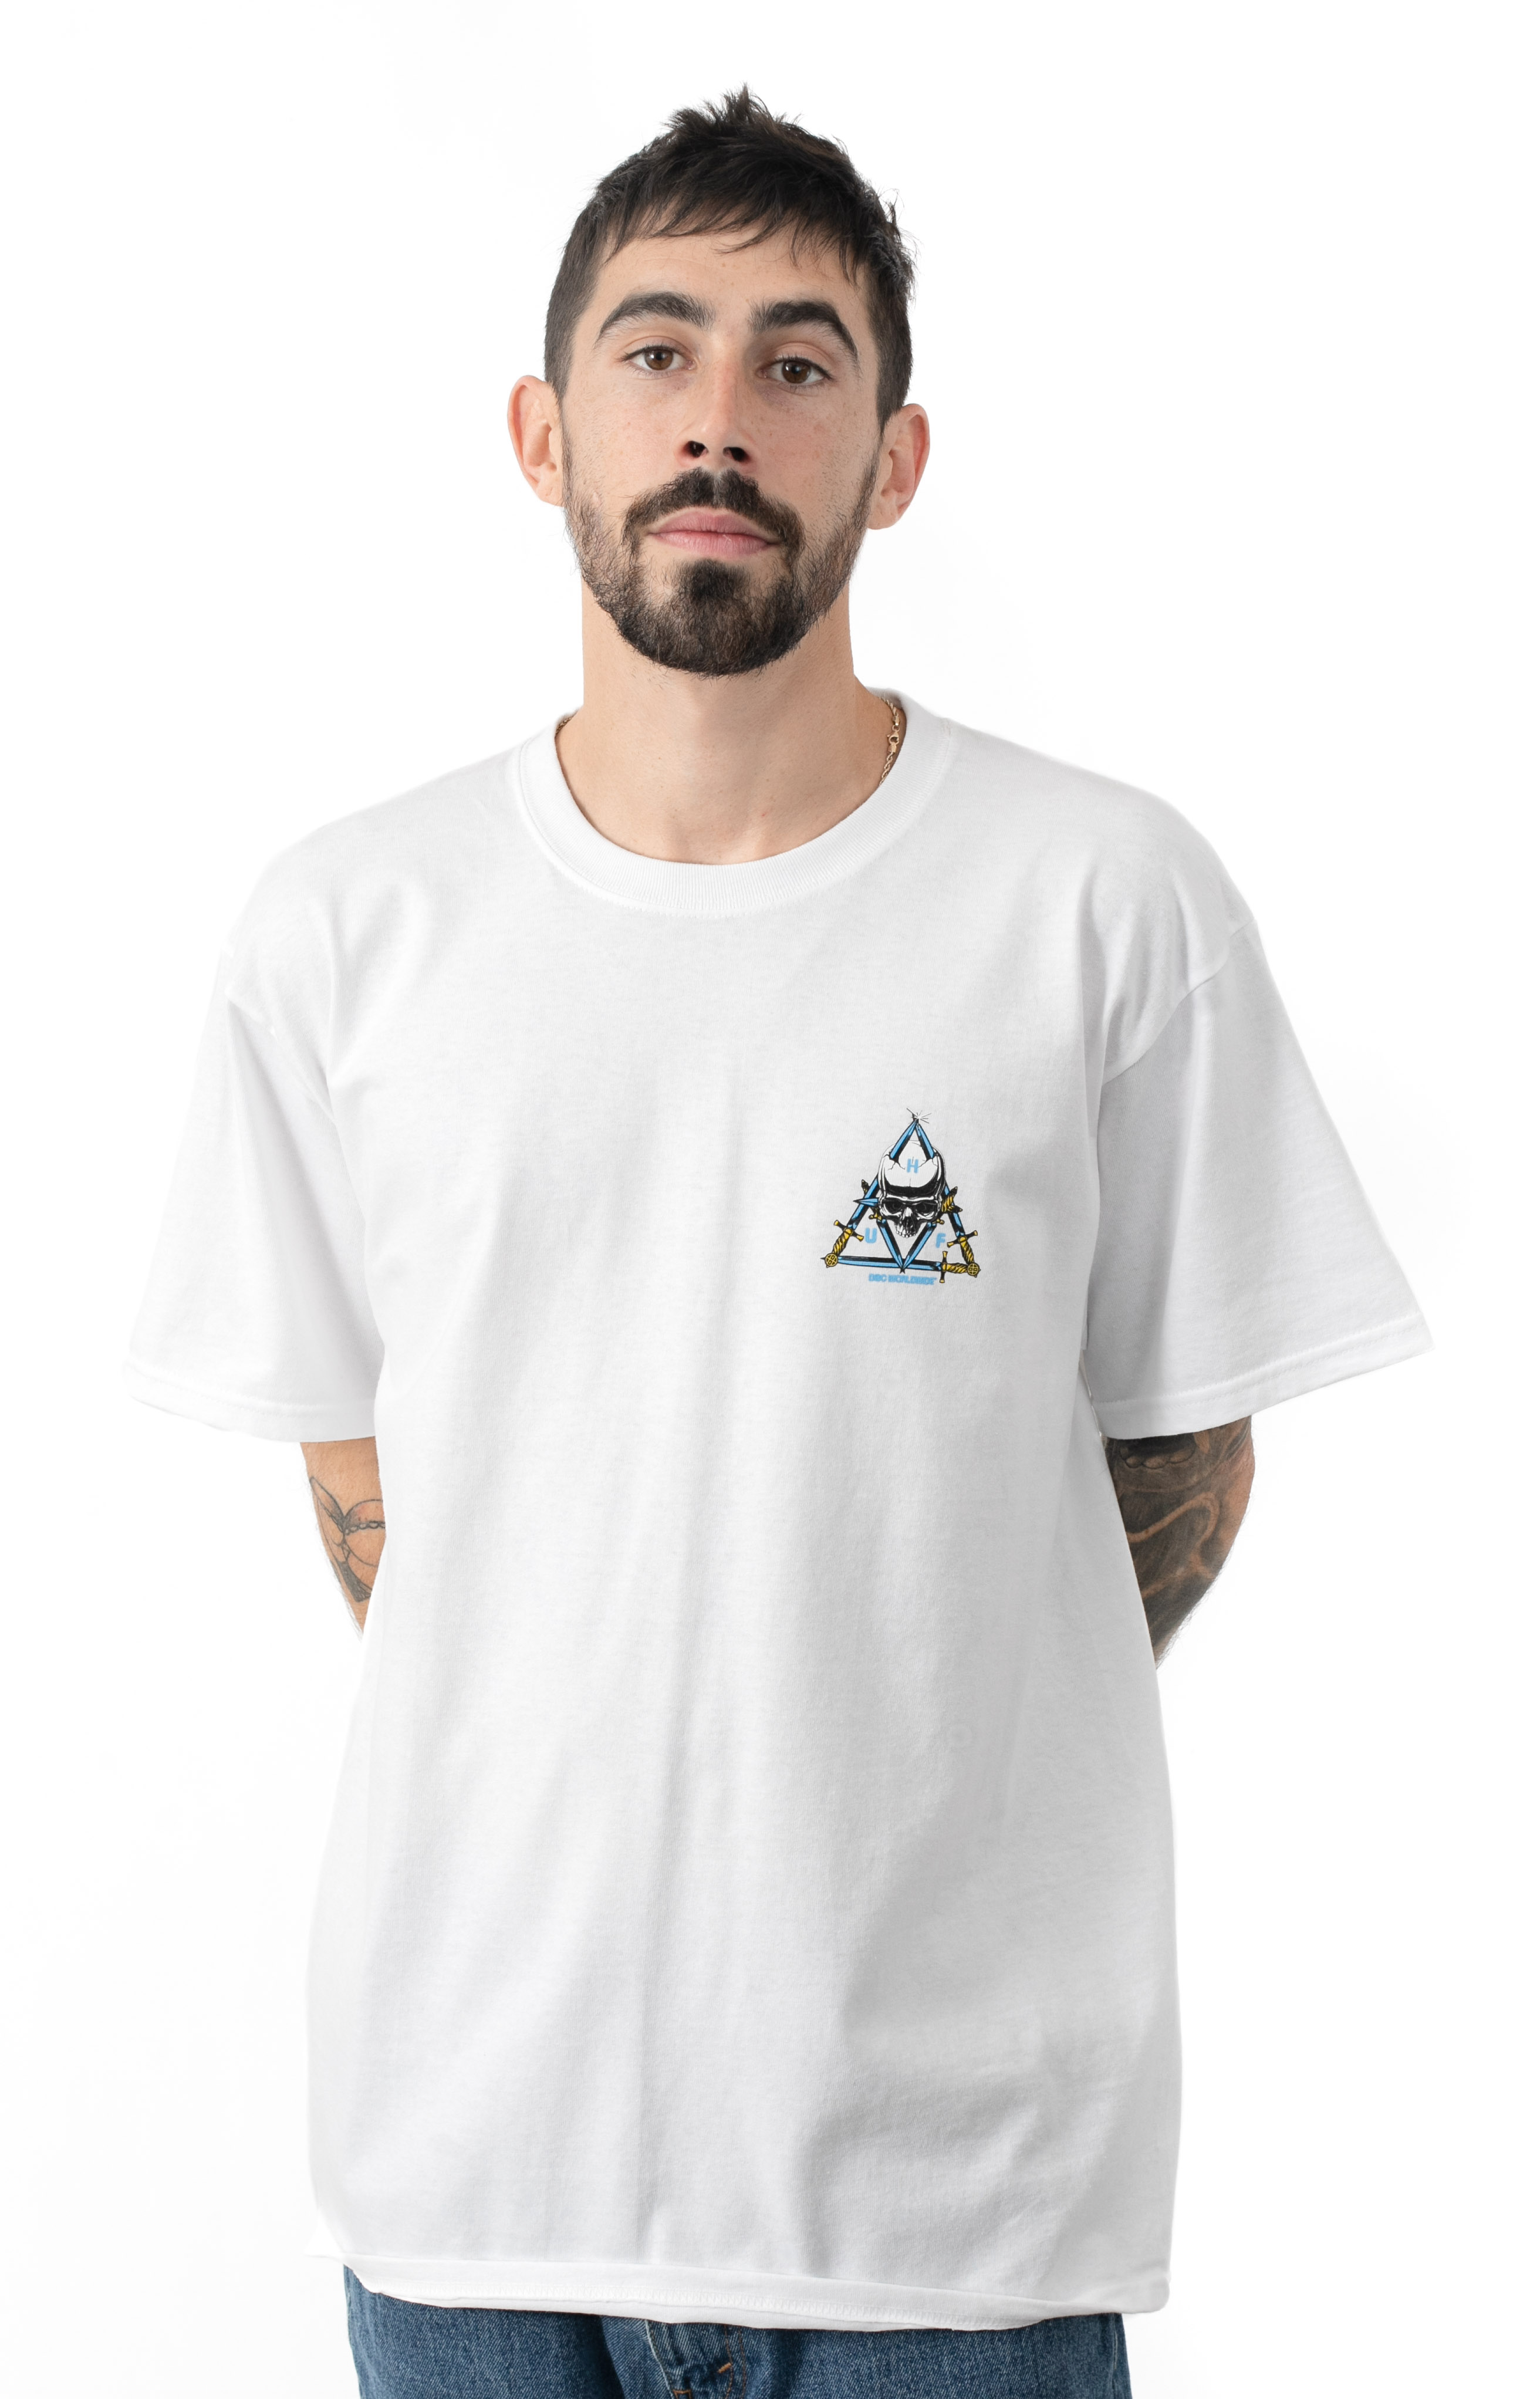 Blvd T-Shirt - White  2